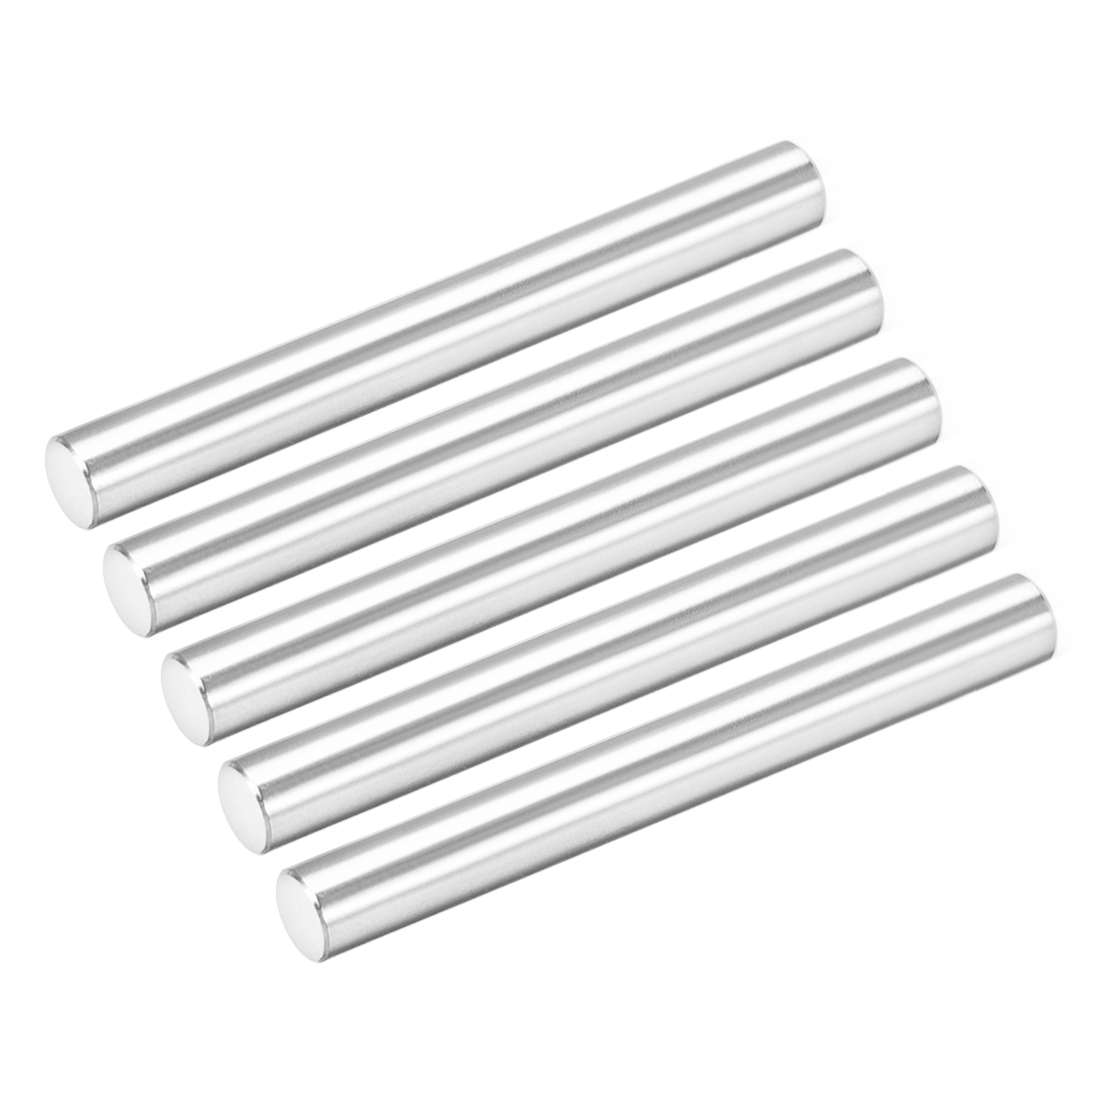 Uxcell 5Pcs 6mm X 55mm Dowel Pin 304 Stainless Steel Cylindrical Shelf Support Pin